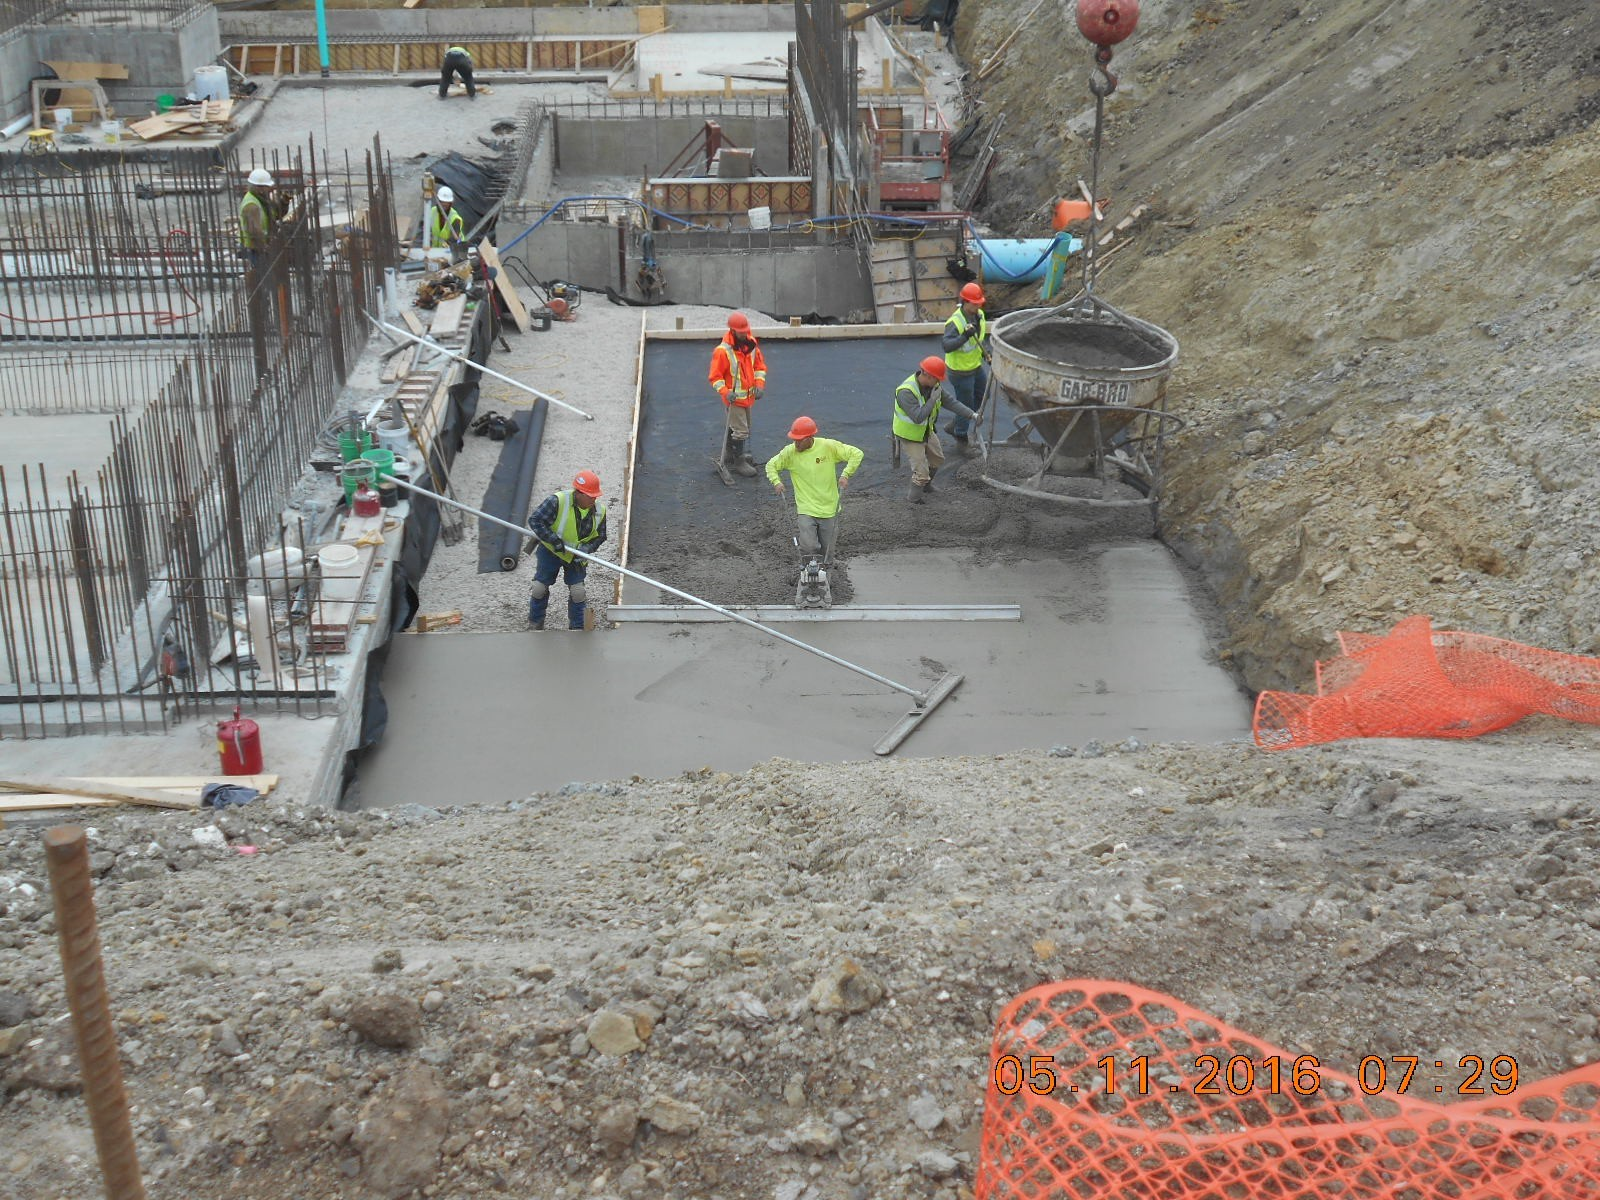 JTJ placing the concrete mud slab at the southwest corner of the building.